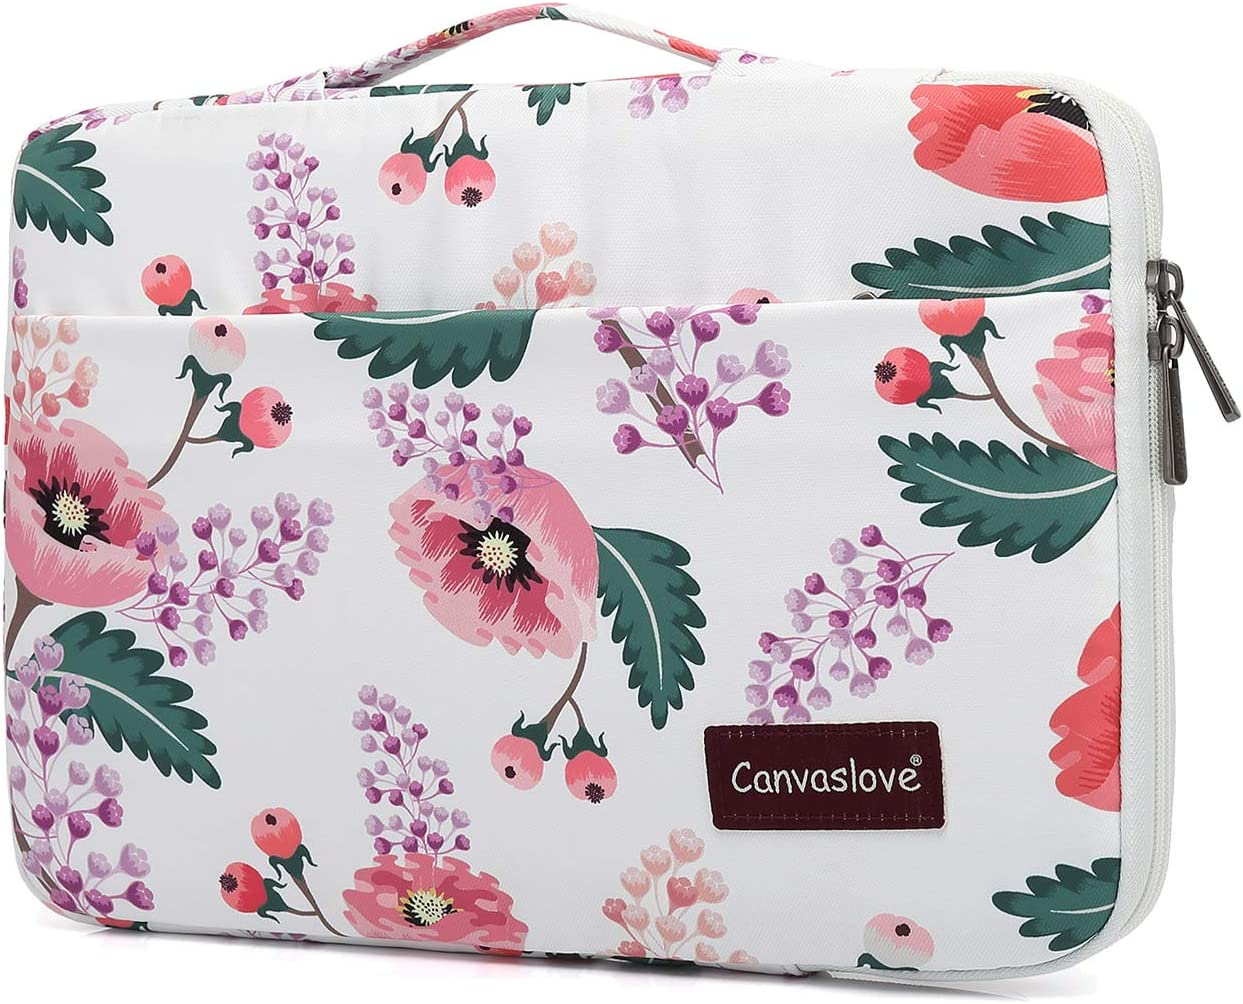 Canvaslove Waterproof Conner Protection Laptop Sleeve with Handle (13 inch-13.5 inch, White Flower)